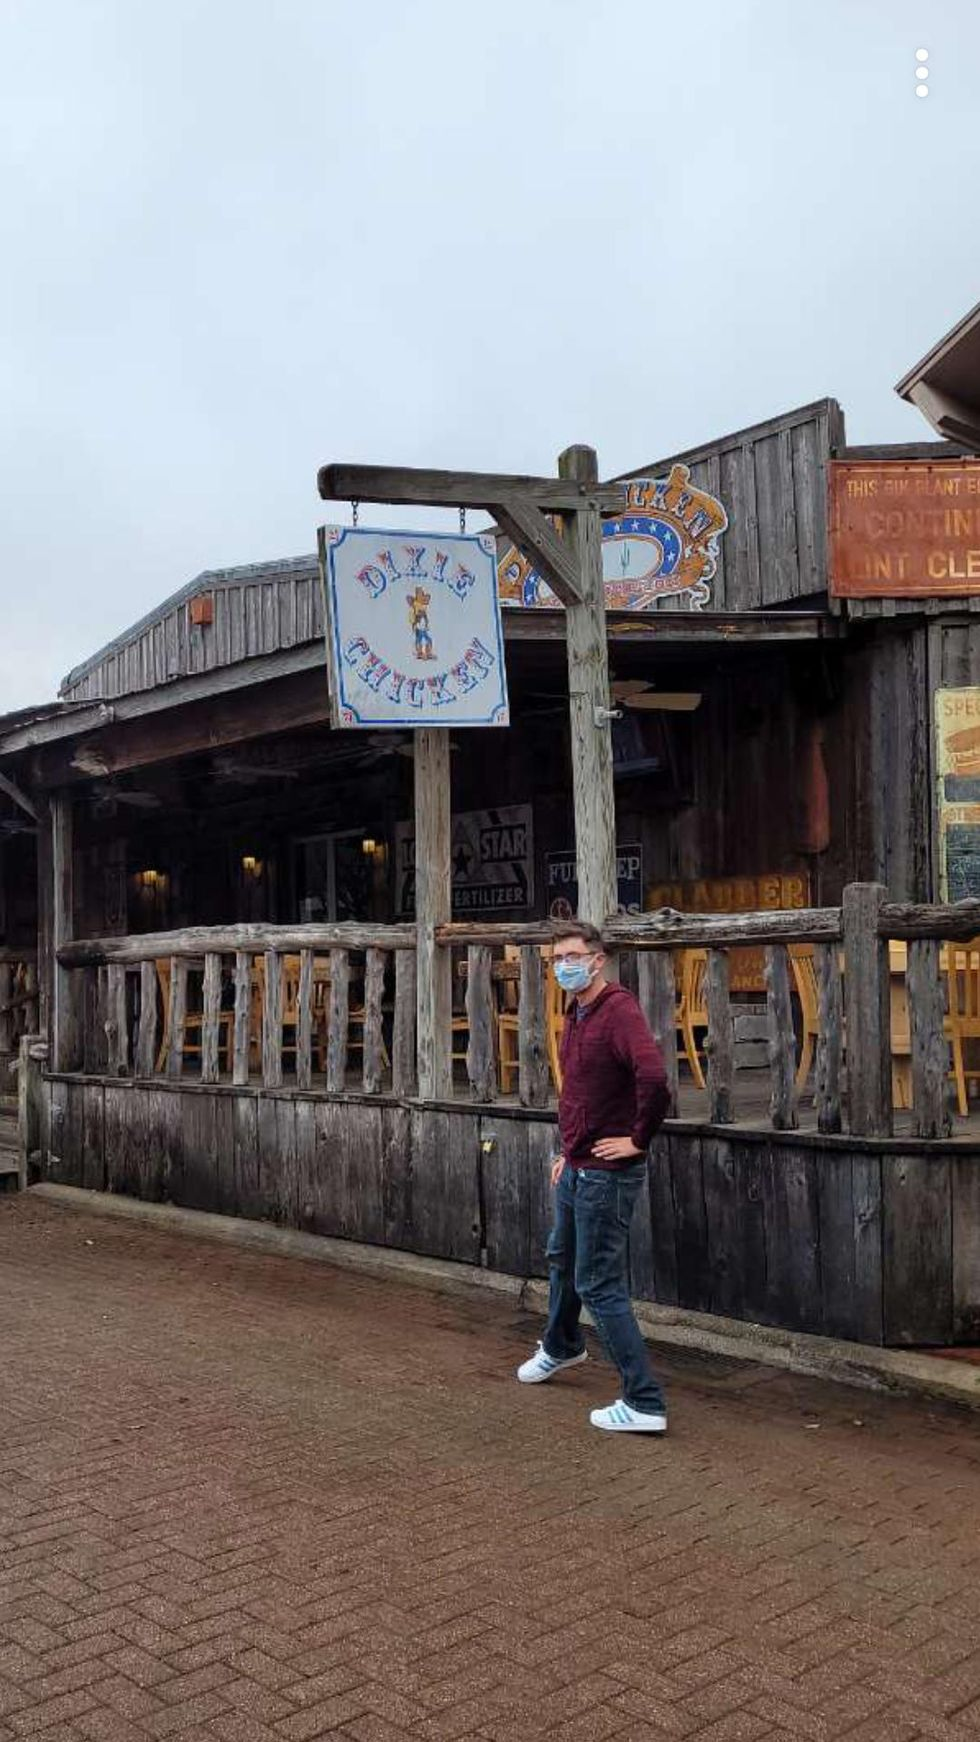 10 Local Businesses To Help During The Coronavirus Crisis In College Station